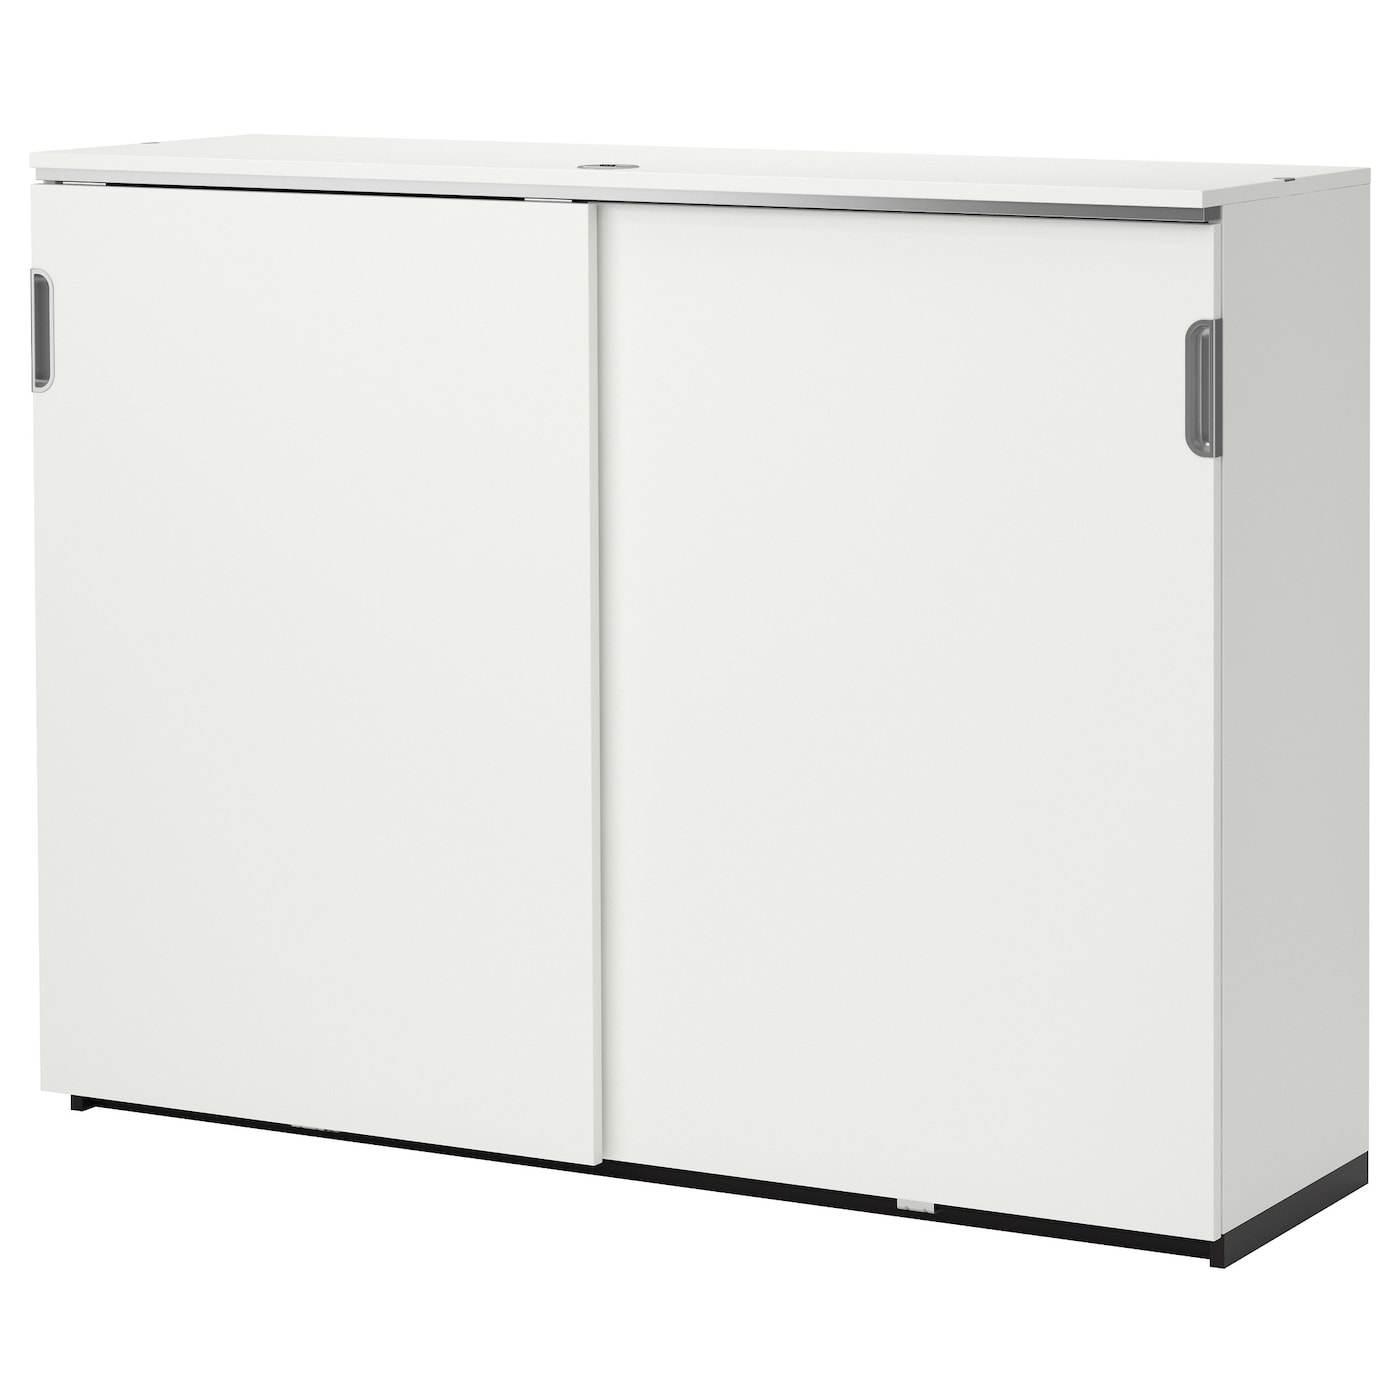 Galant cabinet with sliding doors white 160x120 cm ikea - Ikea cabinet doors on existing cabinets ...